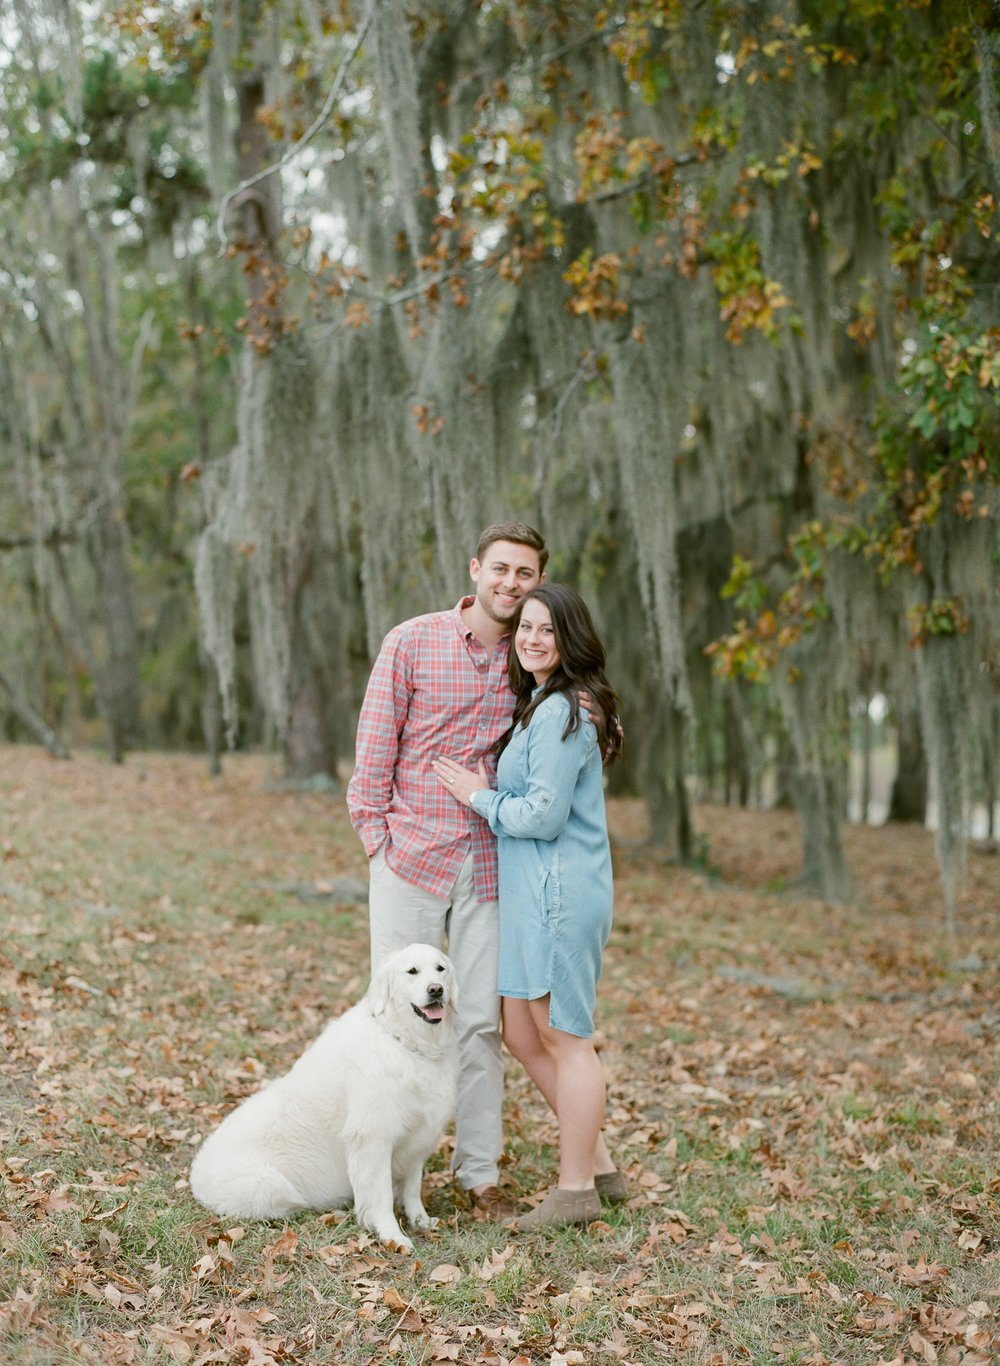 Engagement Session Pictures with Dog